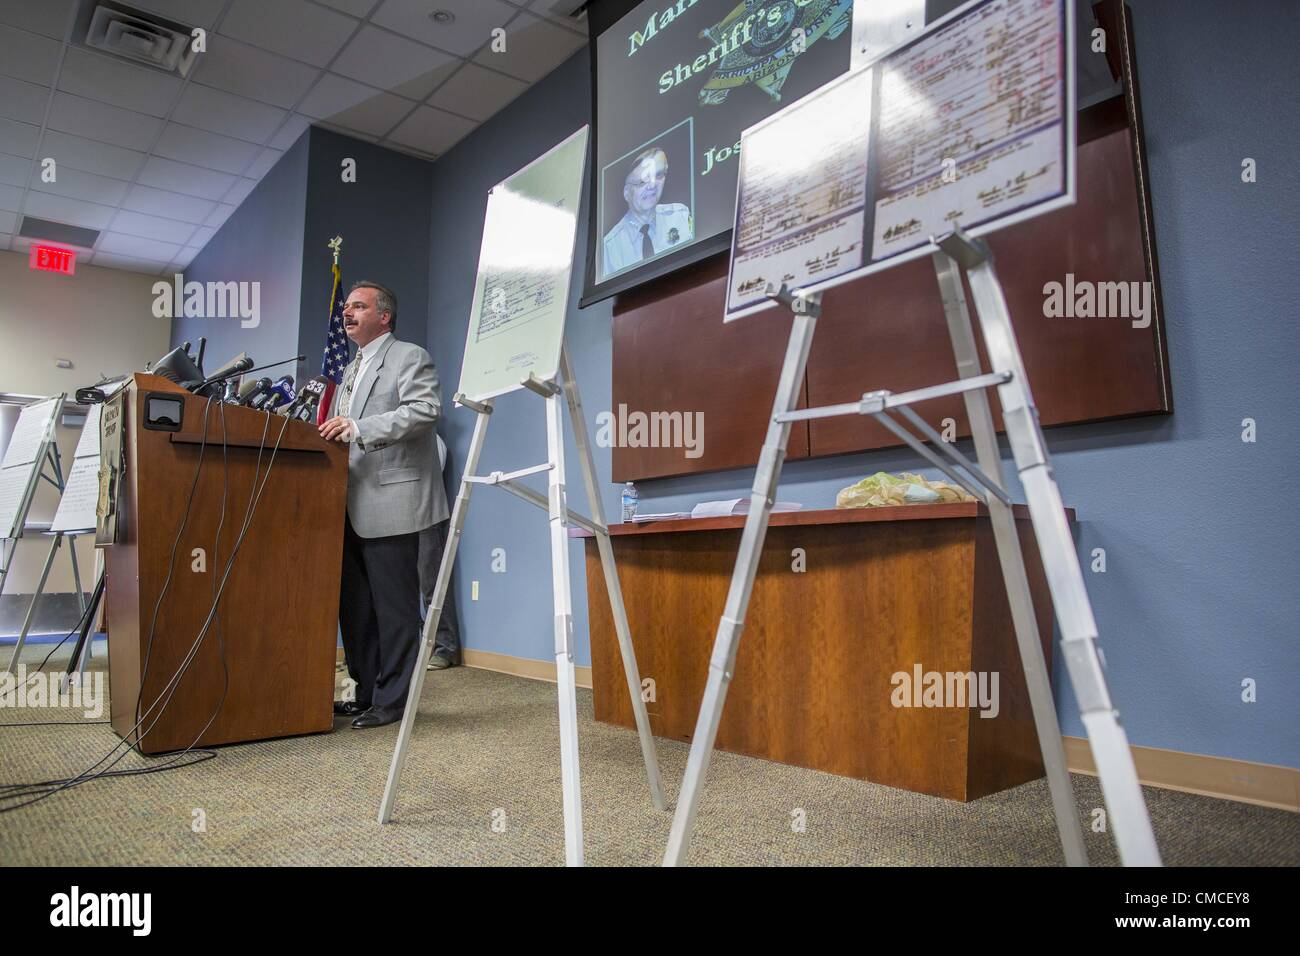 July 17 2012 arizona us mike zullo the volunteer volunteer investigator used by maricopa county sheriff joe arpaio announces his findings that president barrack obamas birth certificate is a fraud xflitez Gallery